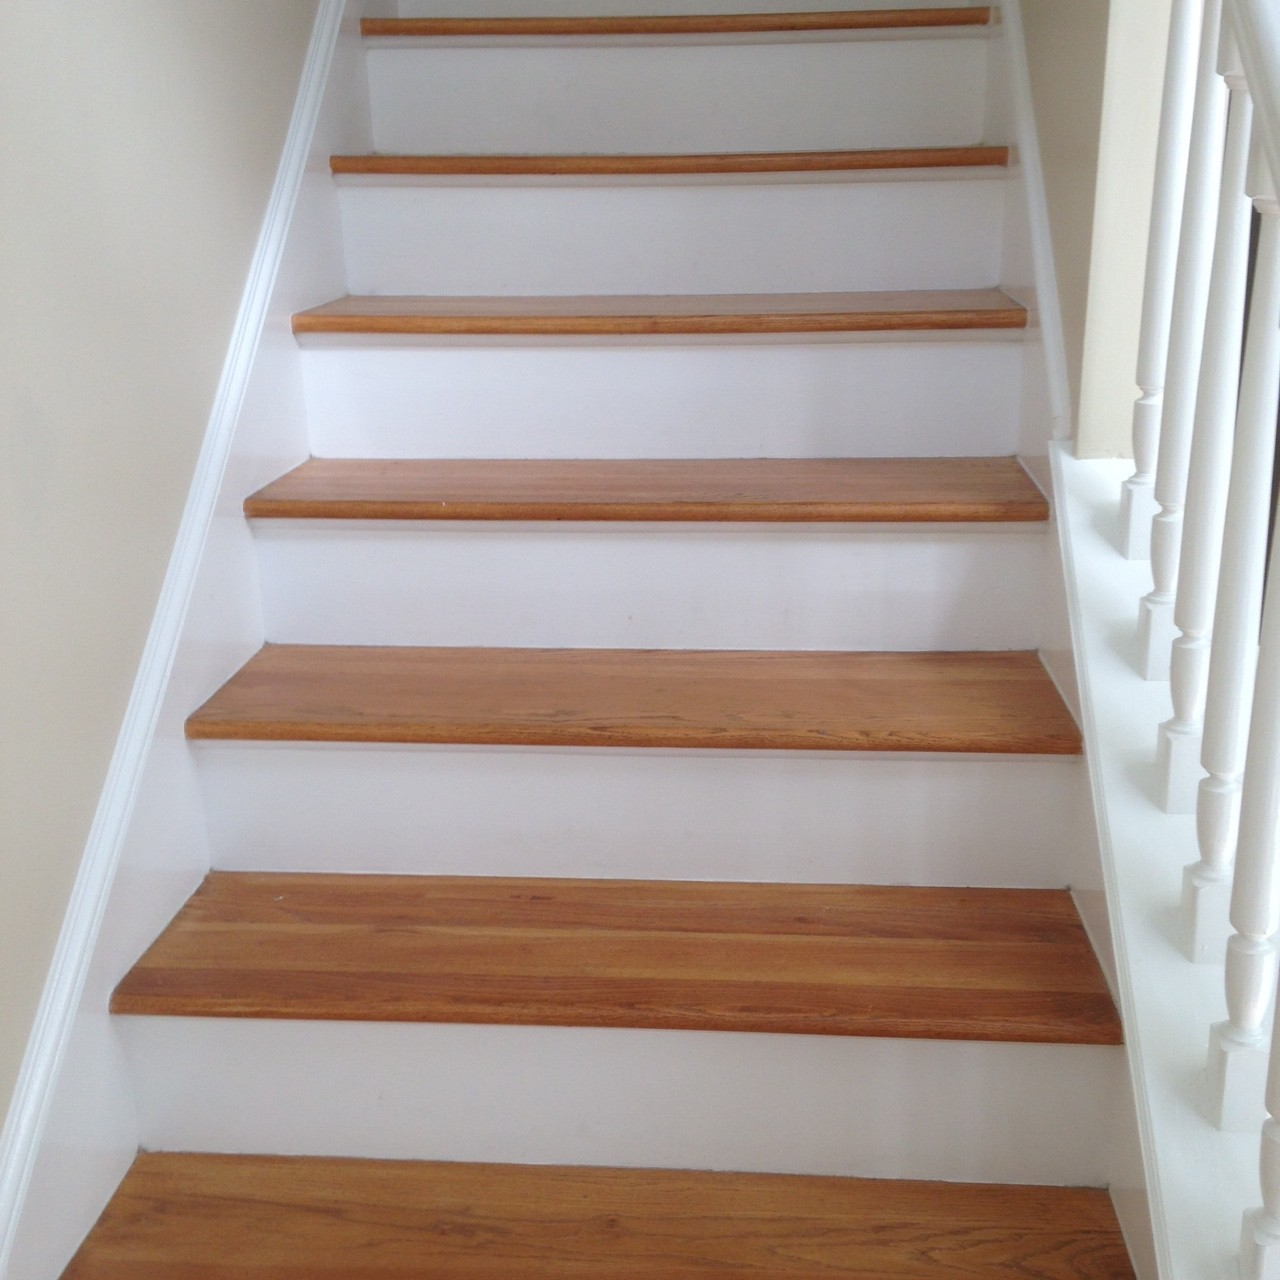 Exceptional Wood Stairs Prior To Sanding And Staining To Refinish